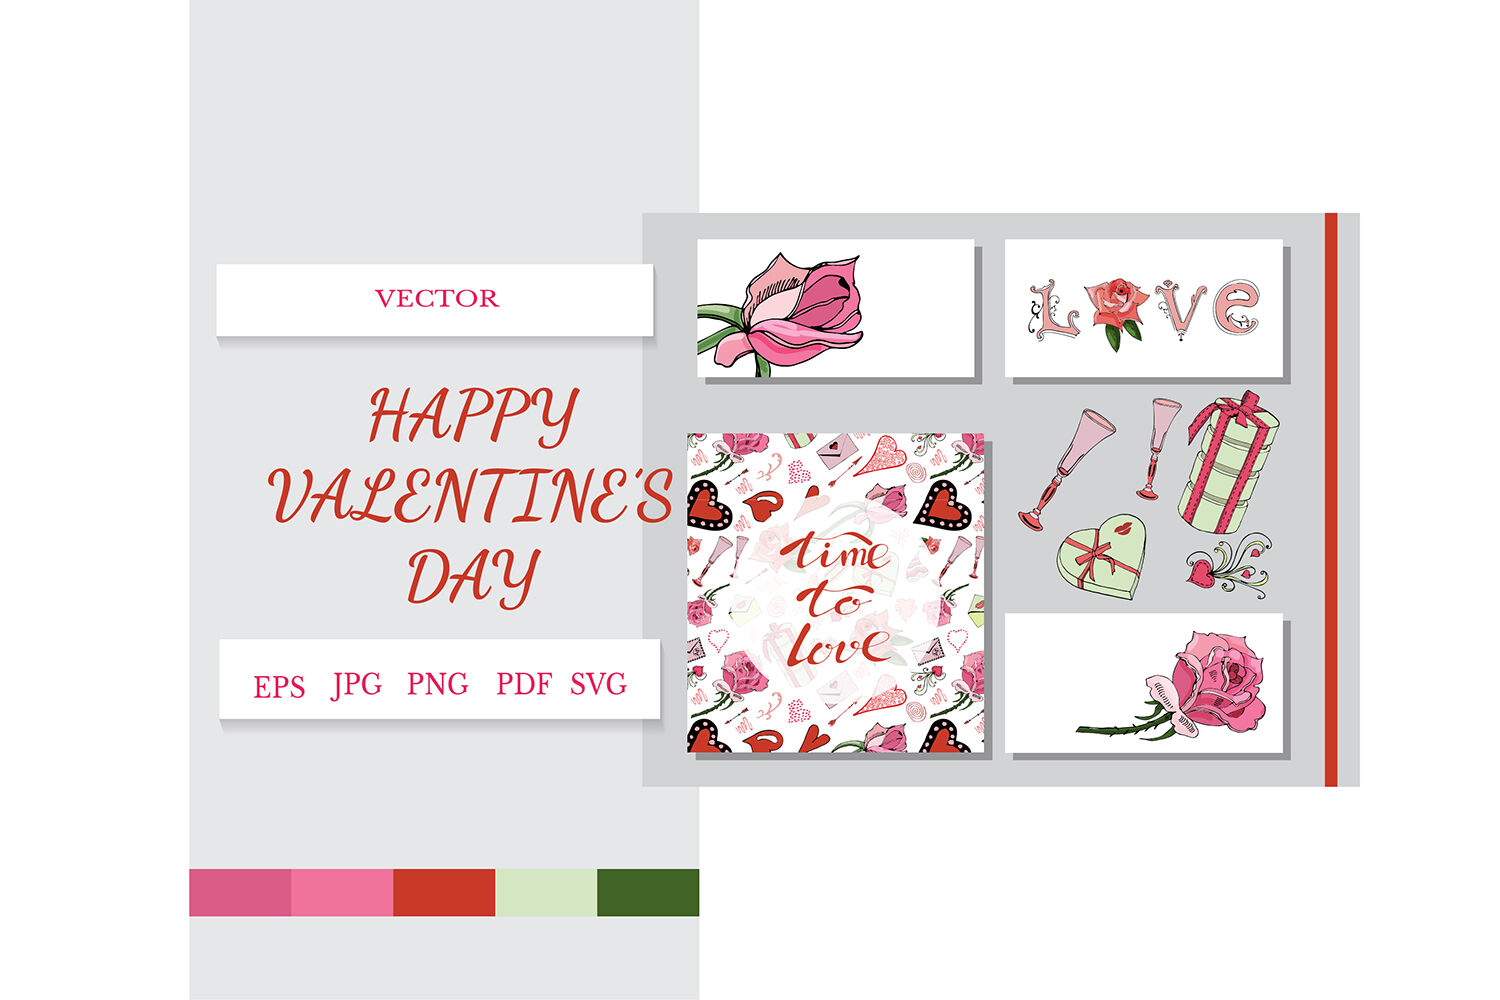 Card With Hand Drawn Color Elements Of Symbols Of Love By